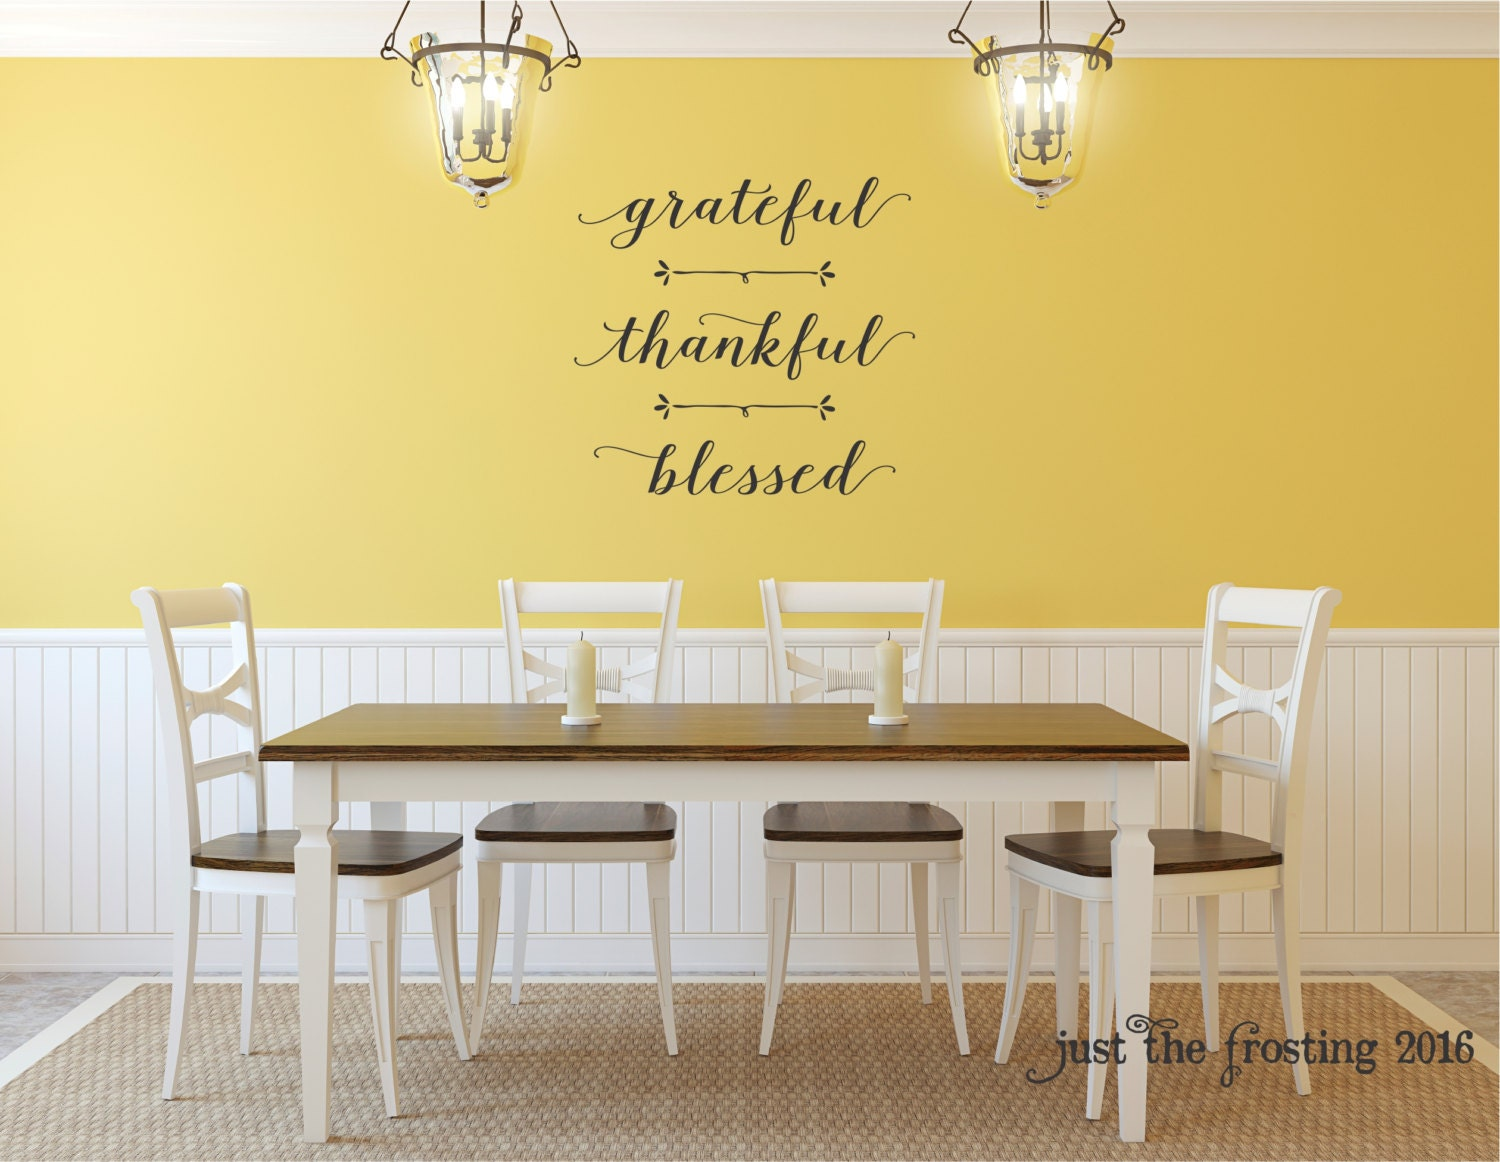 Grateful Thankful Blessed Wall Decal Kitchen Wall Decor